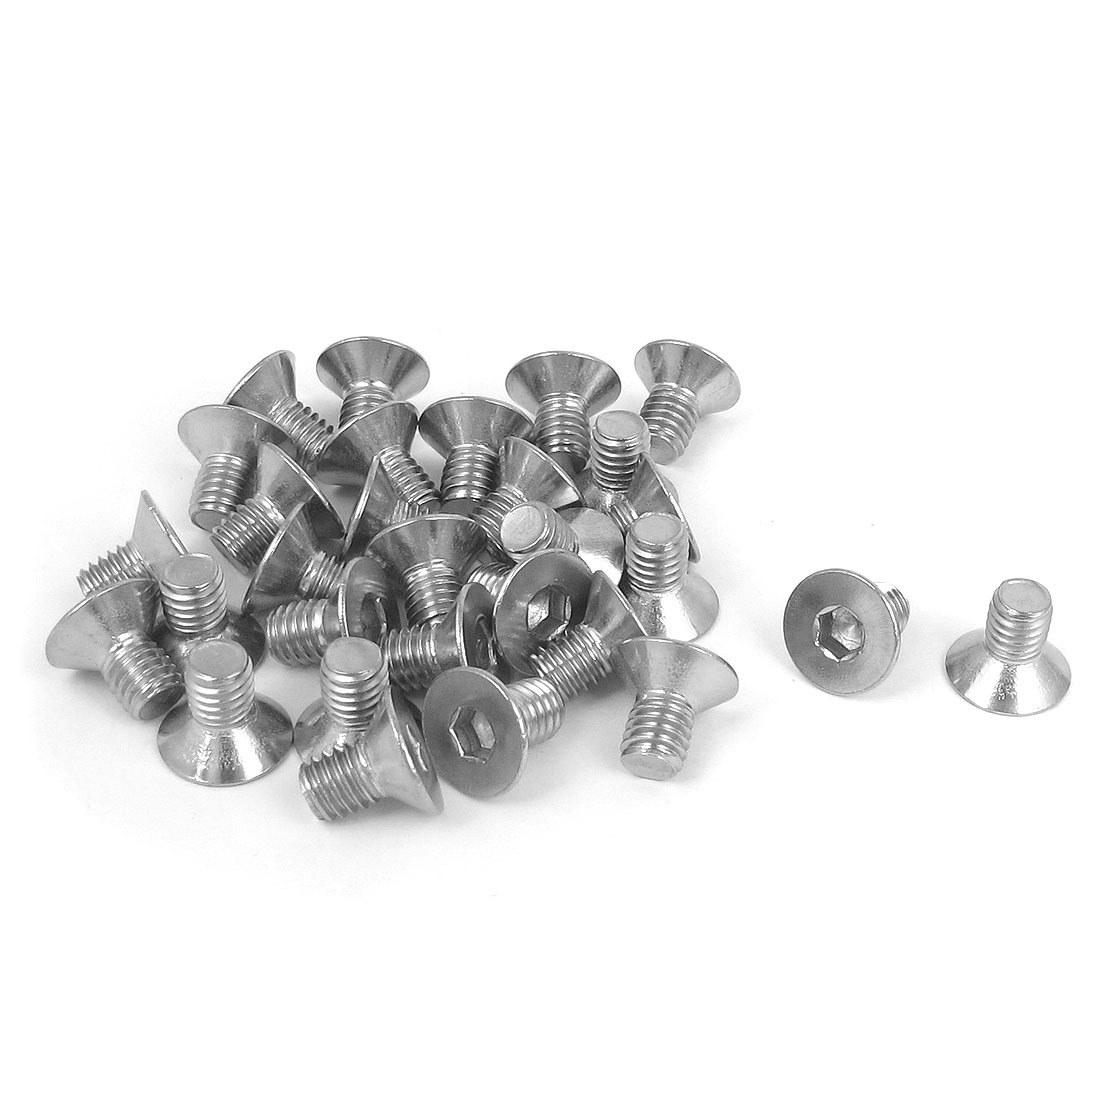 "Easy Set Pin Drive Anchor 3//8/"" x 4 3//4/"" Simpson Strong Tie EZA37434 Expansion Anchor 20 Pack"